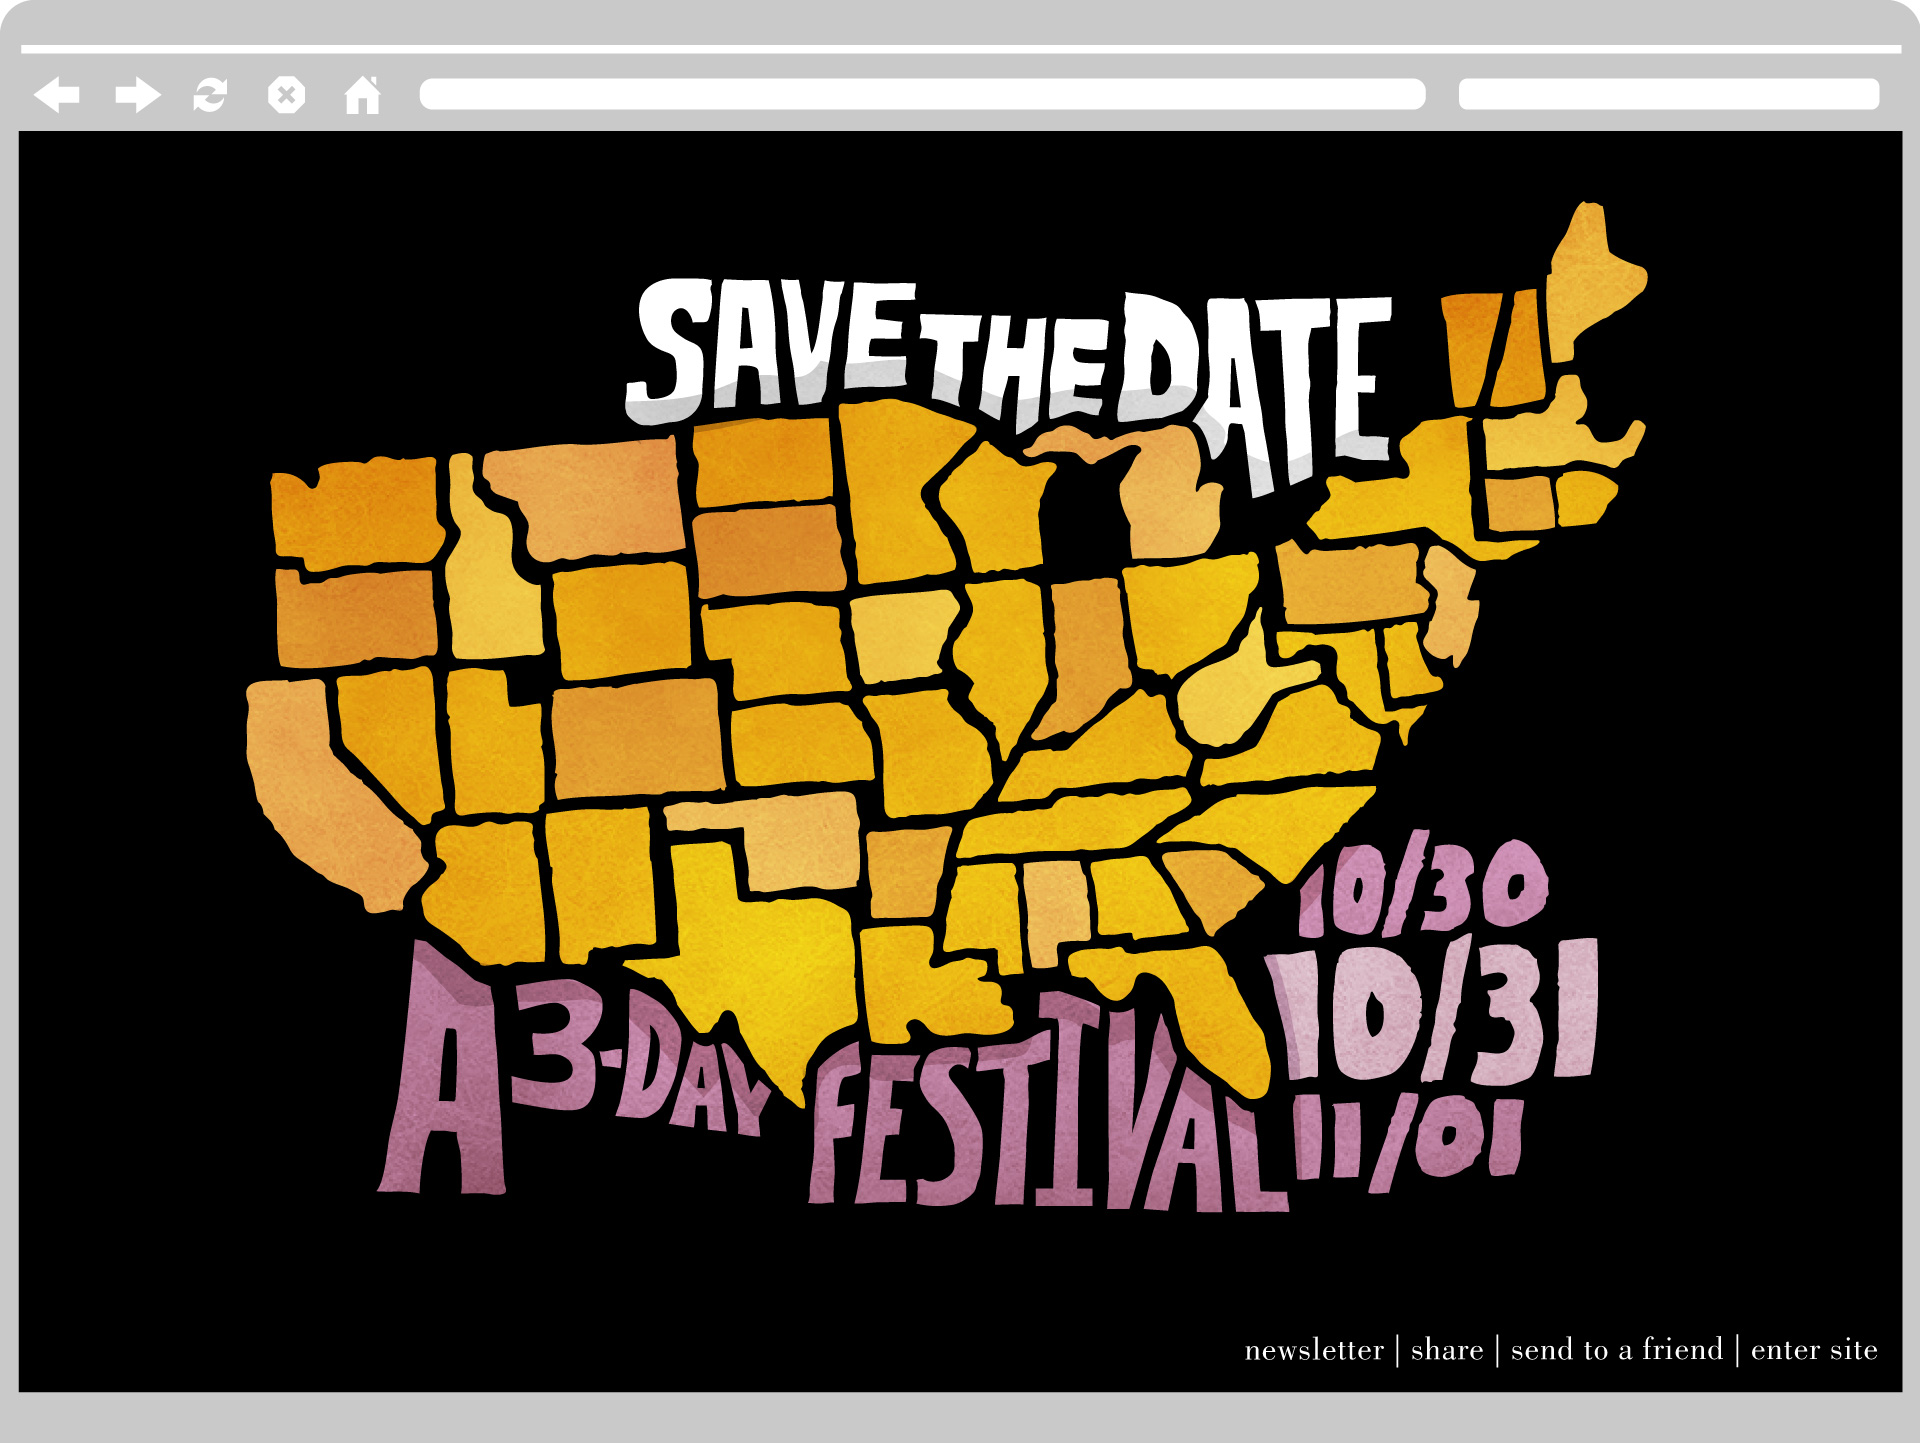 Splash page before any states were removed.